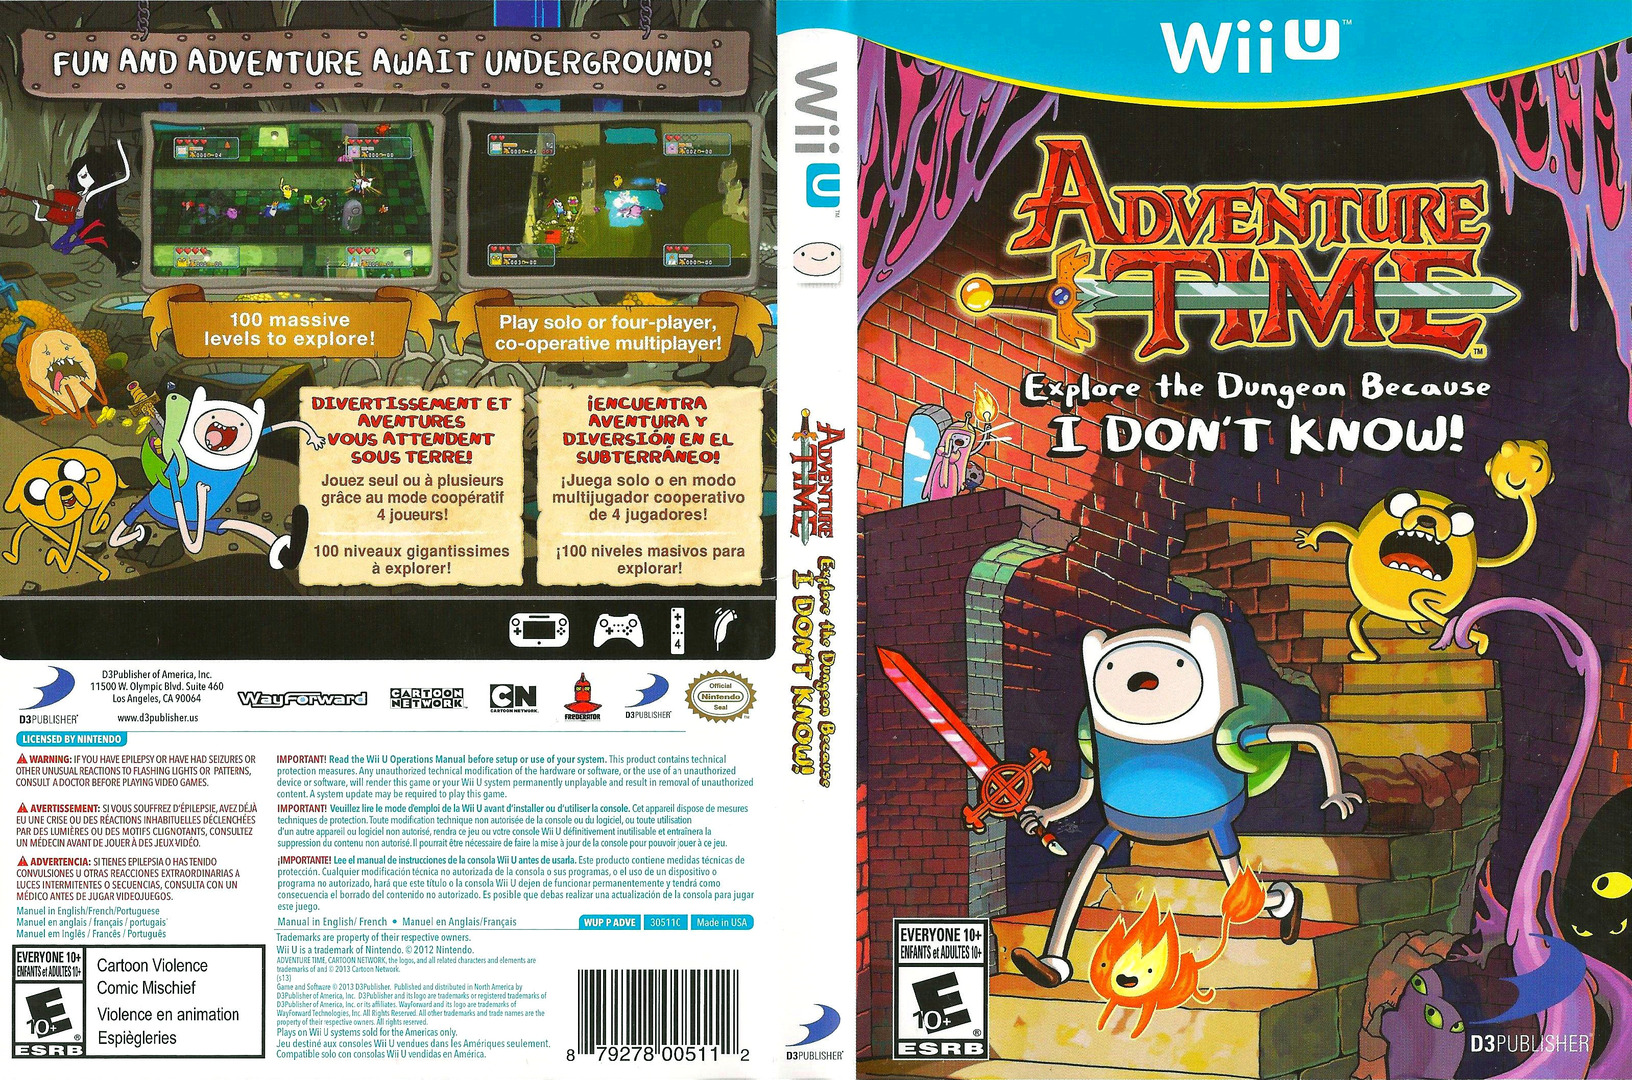 http://art.gametdb.com/wiiu/coverfullHQ/US/ADVEG9.jpg